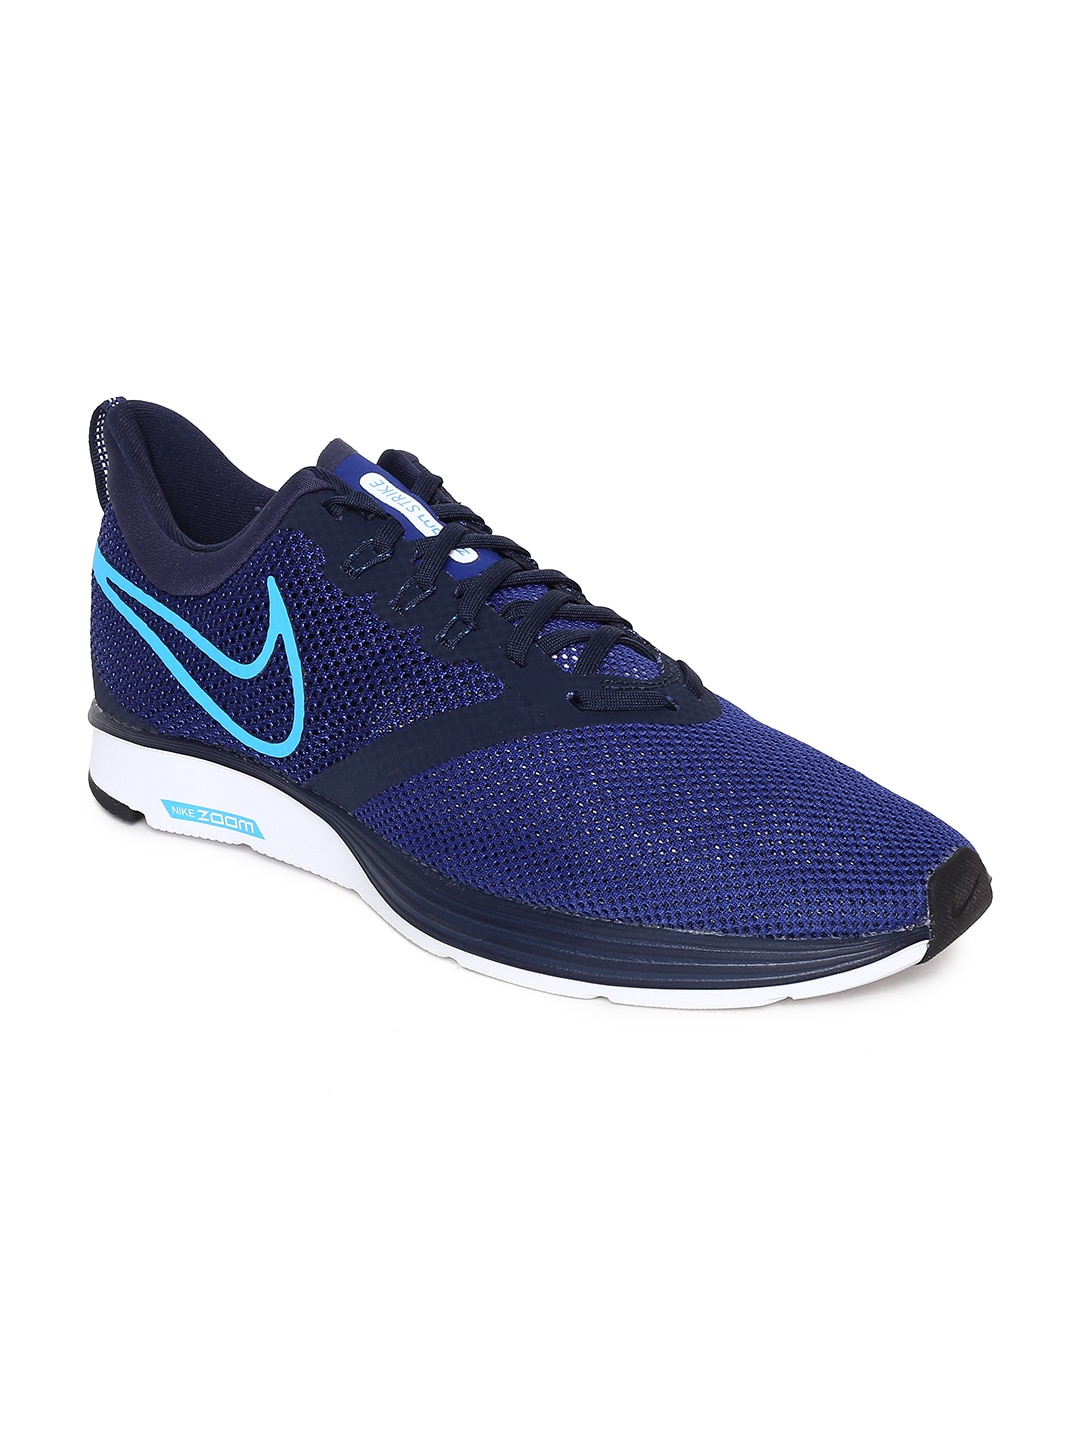 Nike Shoes - Buy Nike Shoes for Men   Women Online  3dbe804bcea8